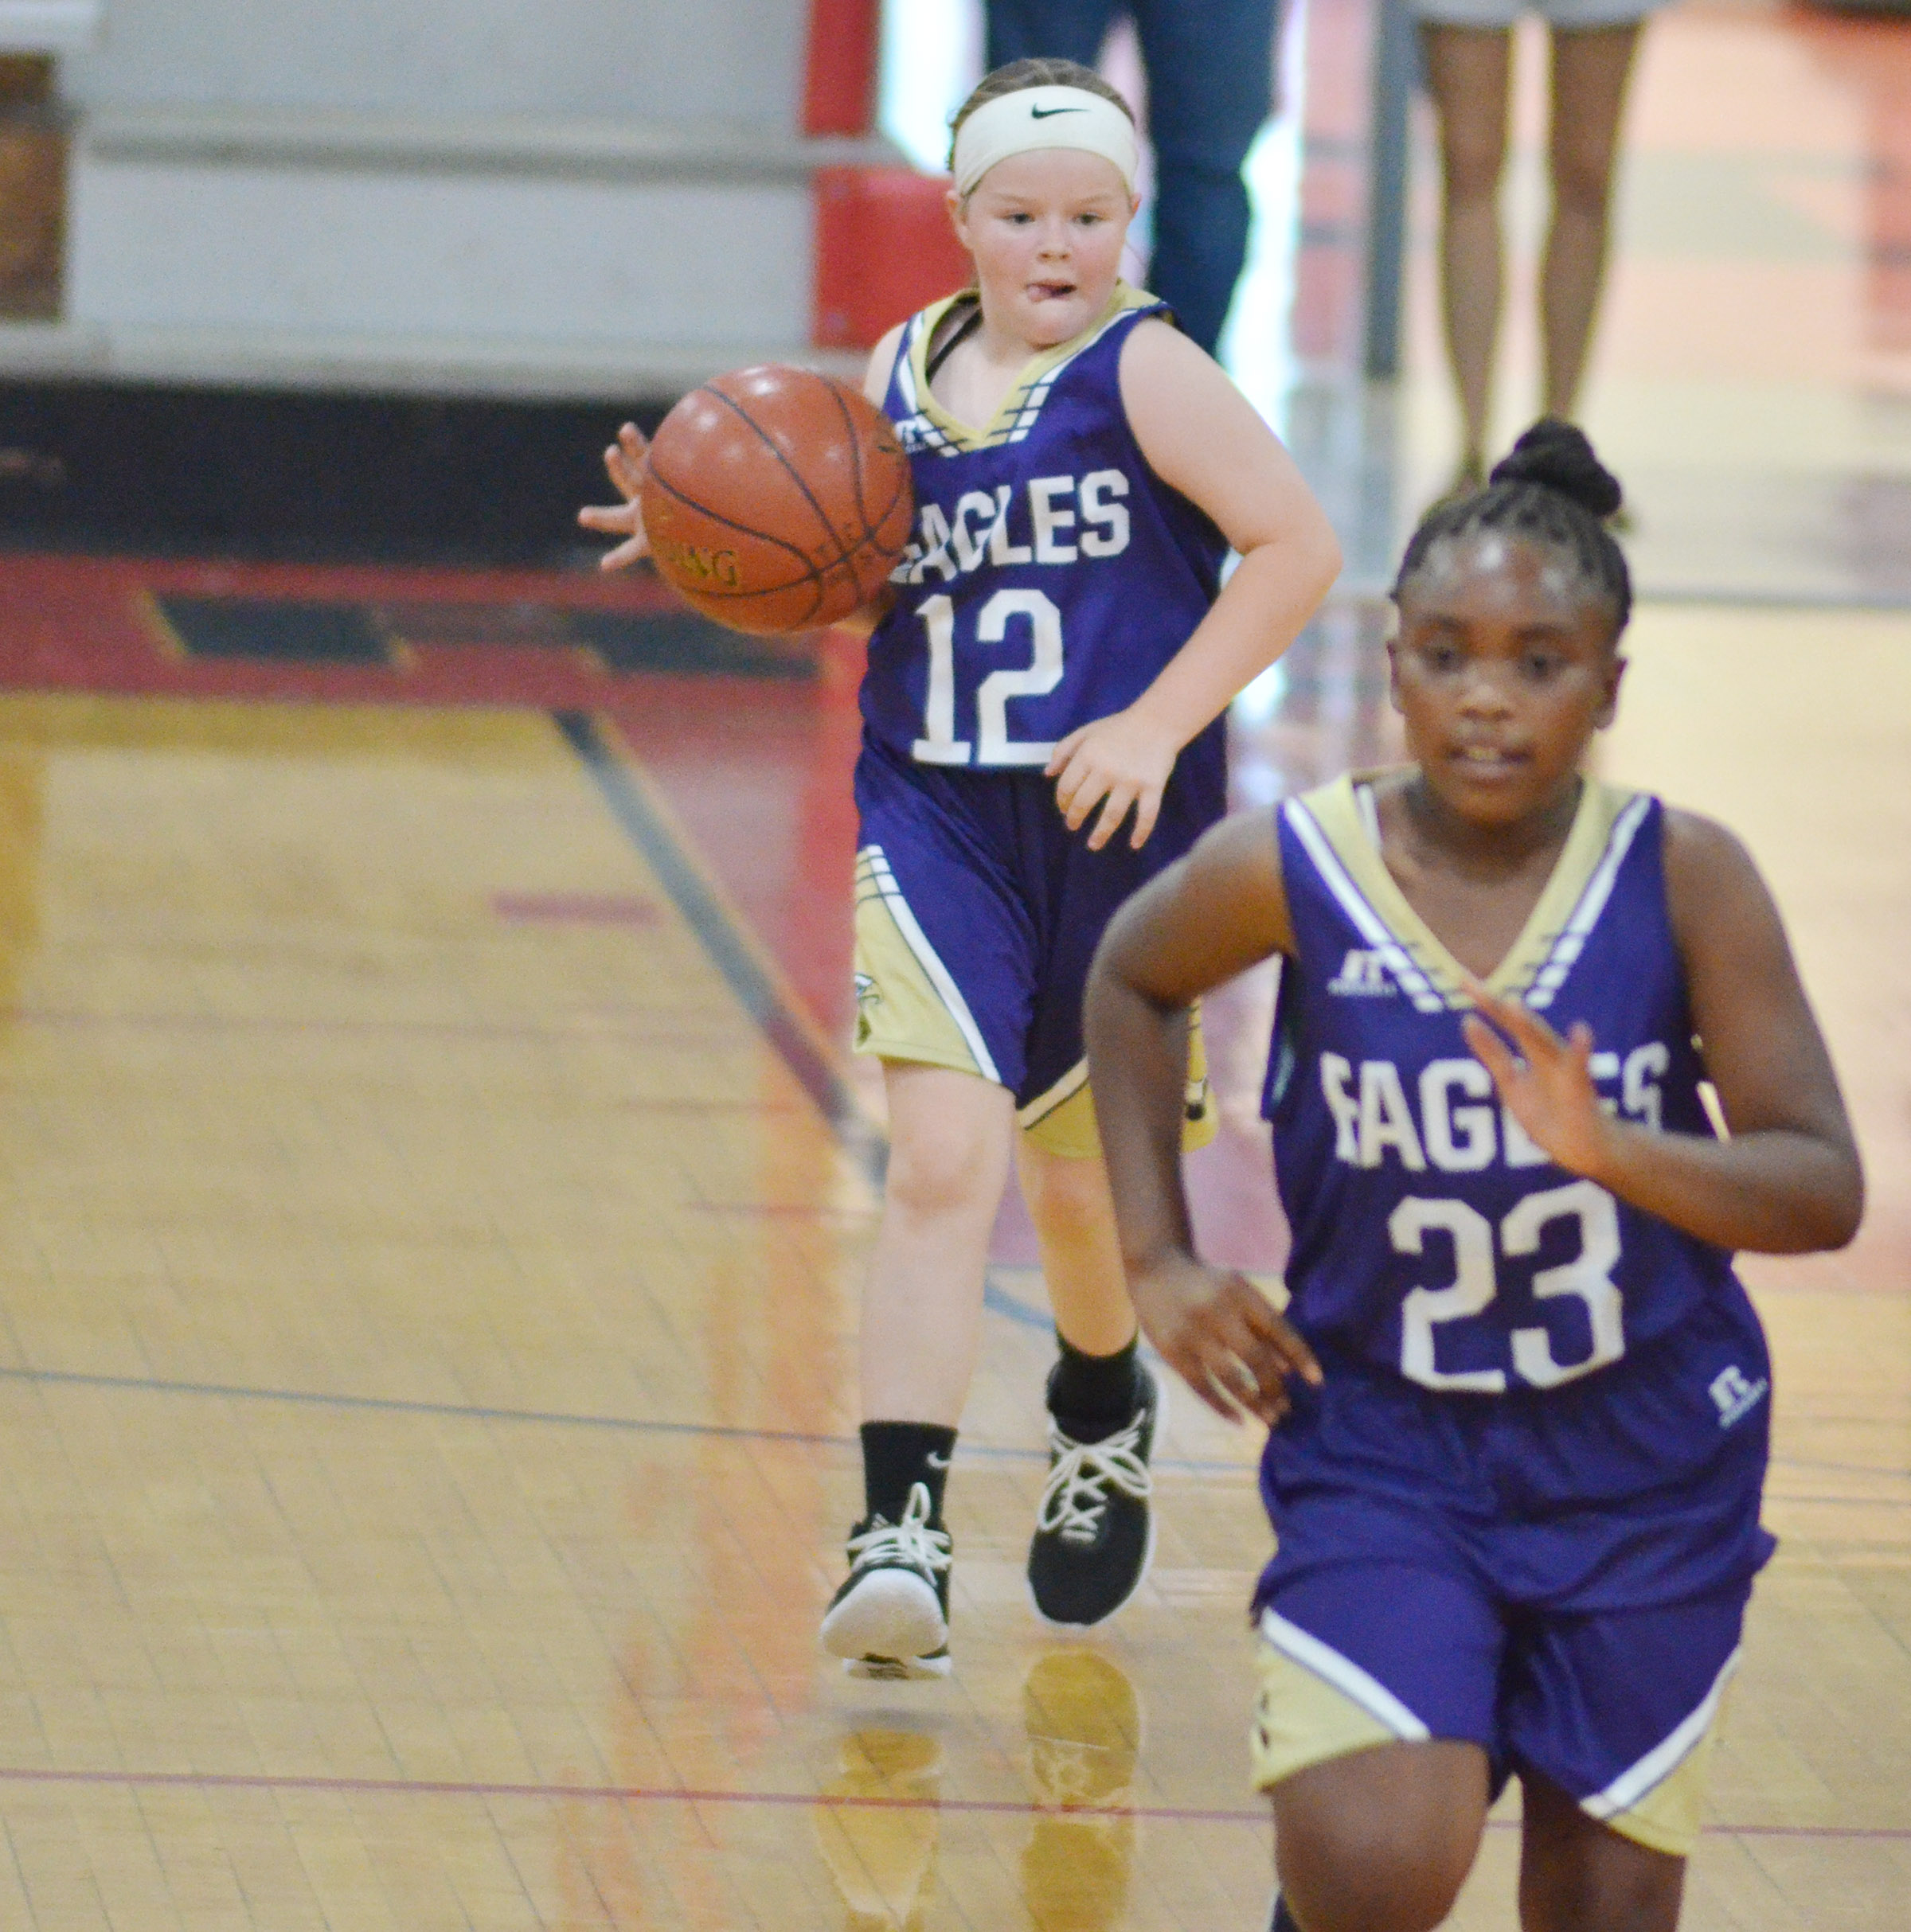 Campbellsville Elementary School fifth-grader Miley Hash dribbles down the court.